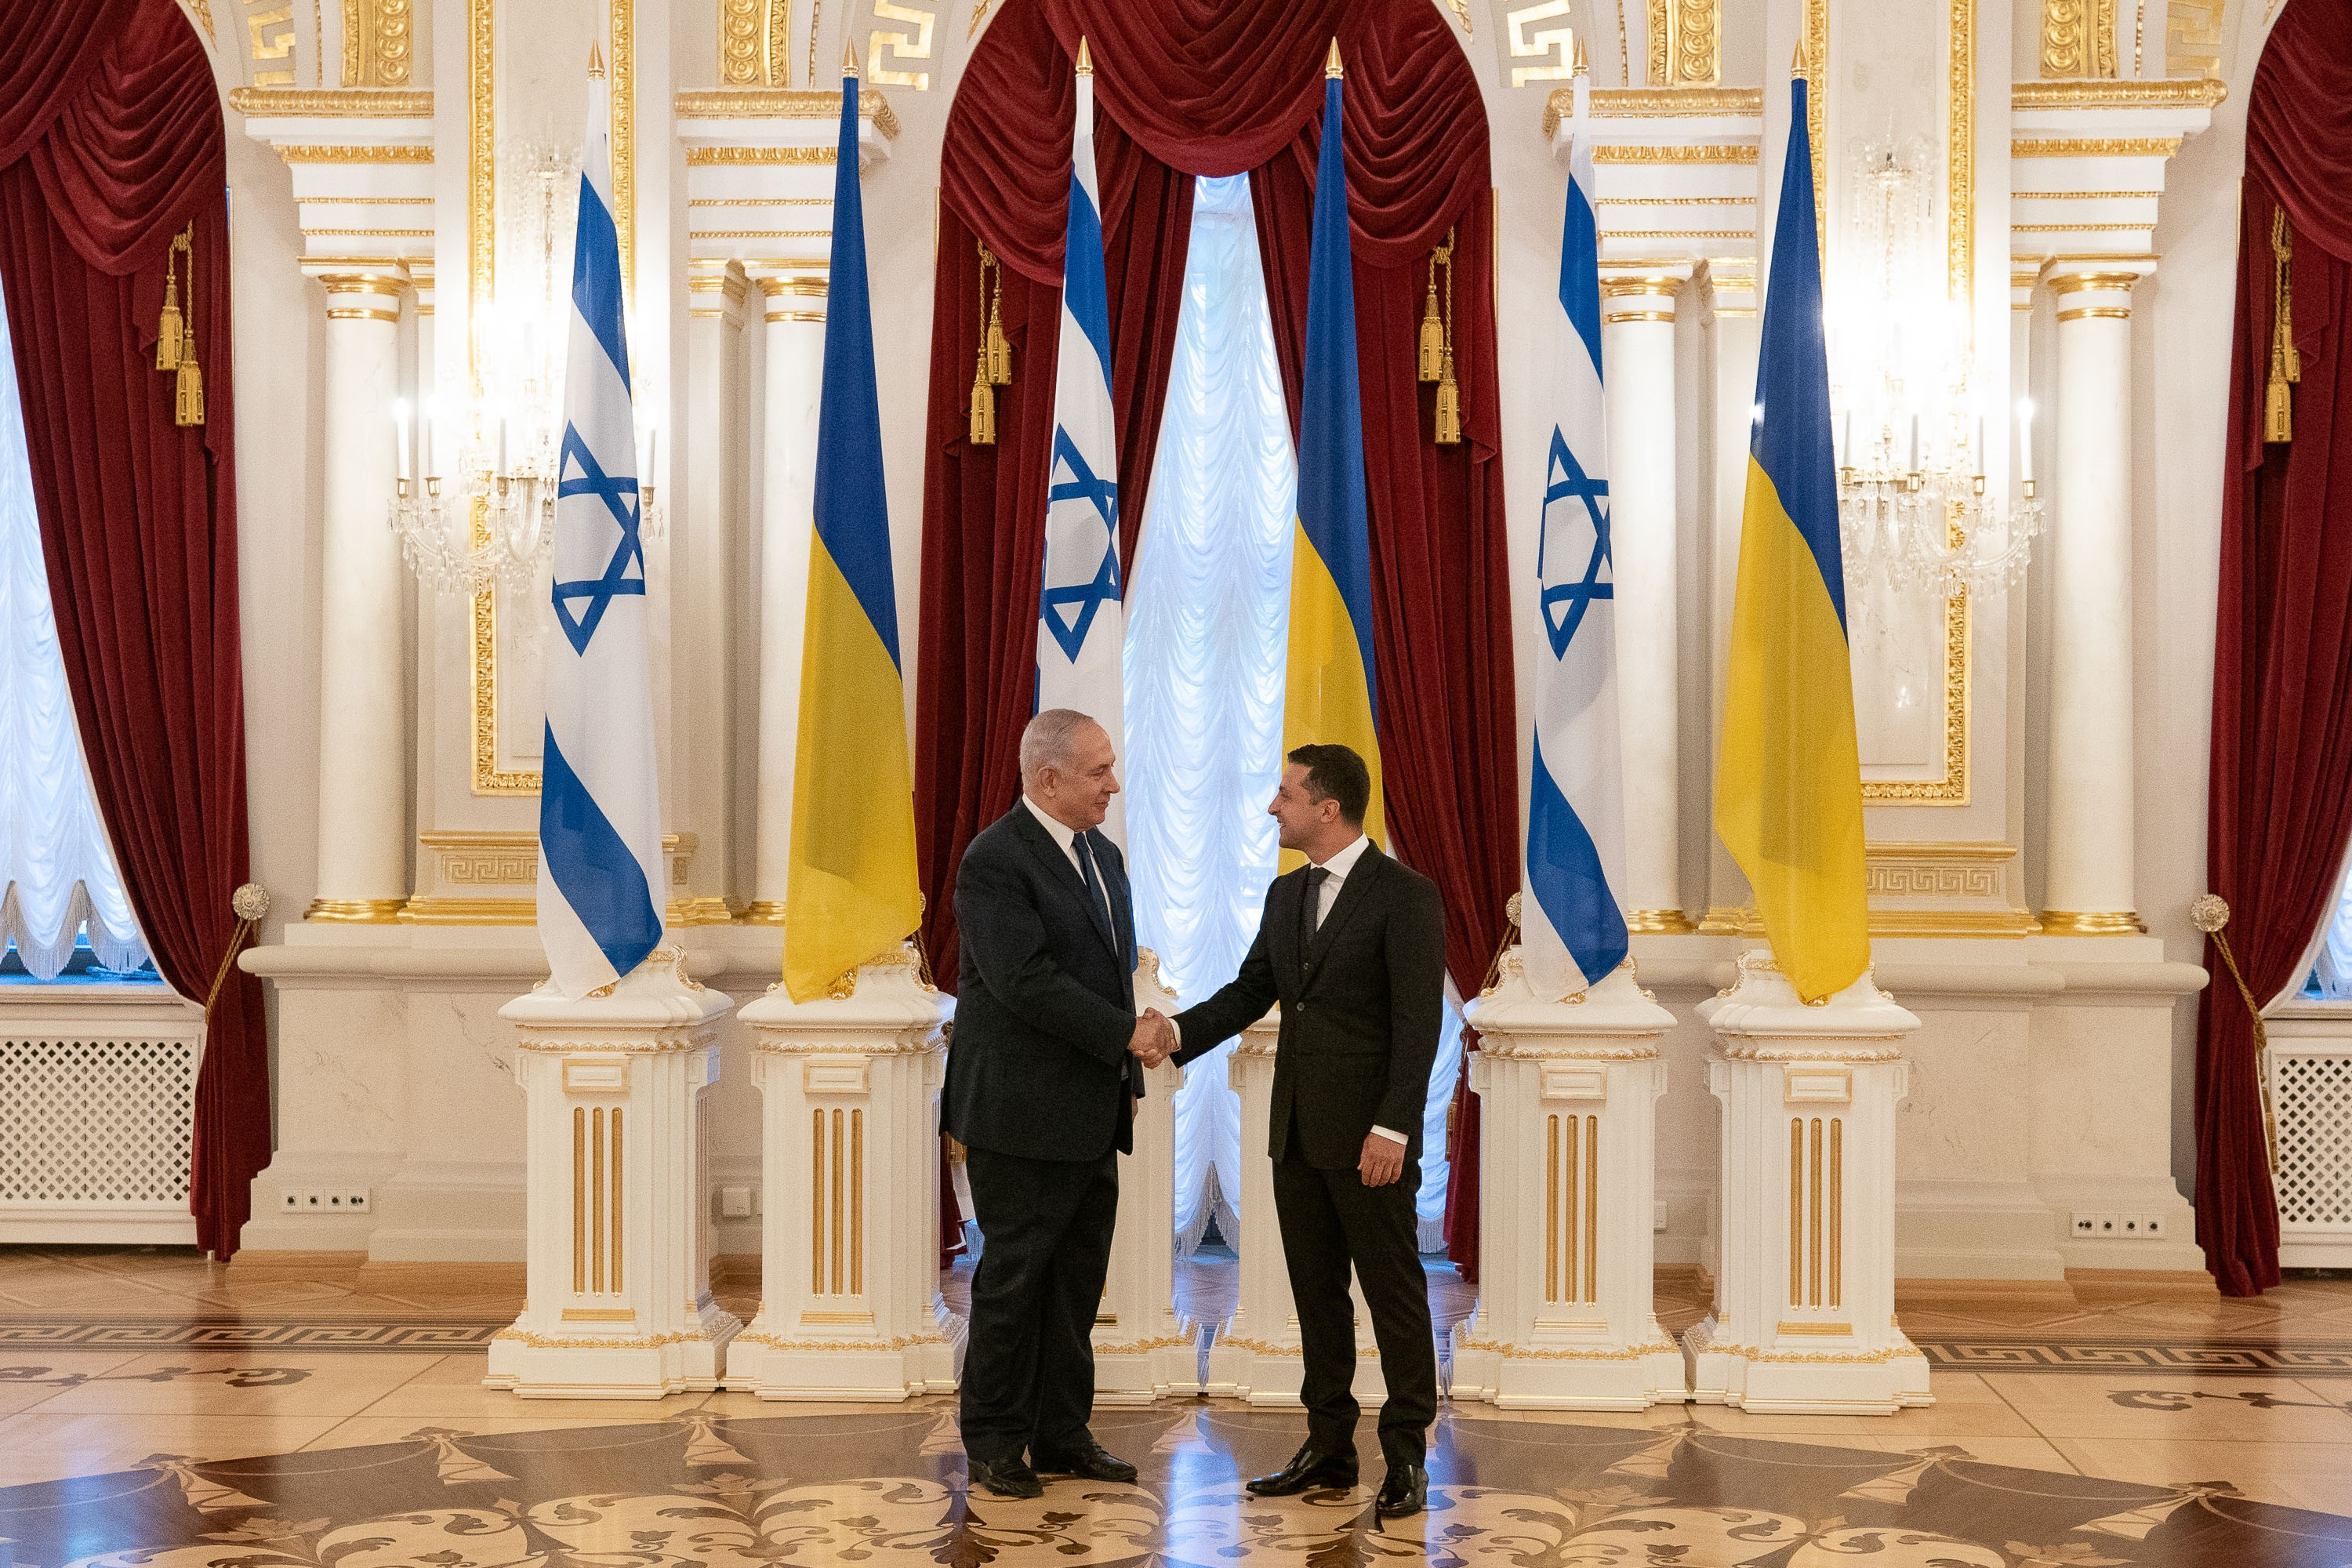 Netanyahu Looks for Israeli Voters in Ukraine